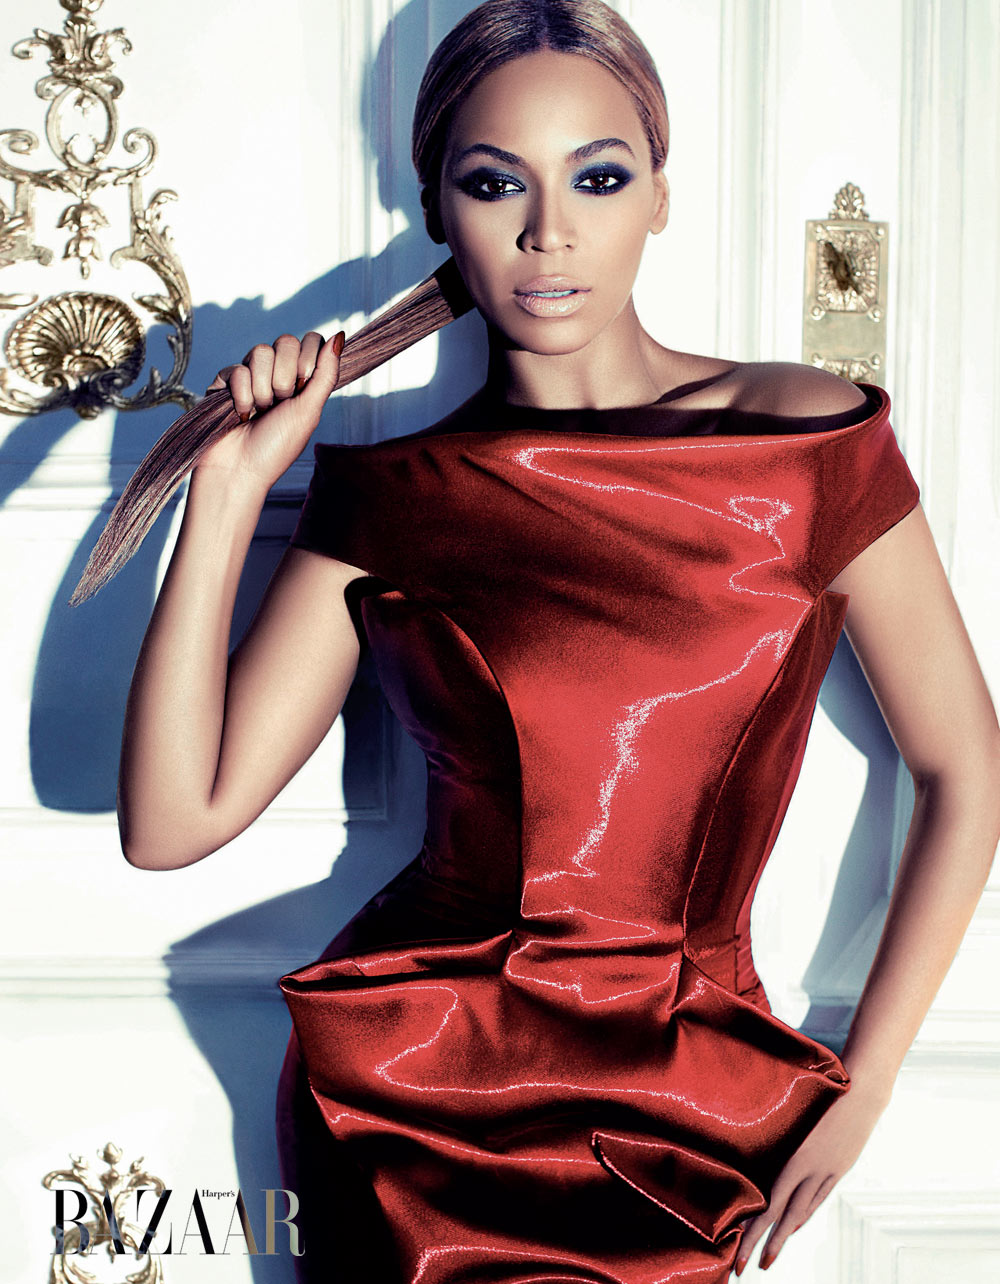 20140910_beyonce-knowles-cover-05